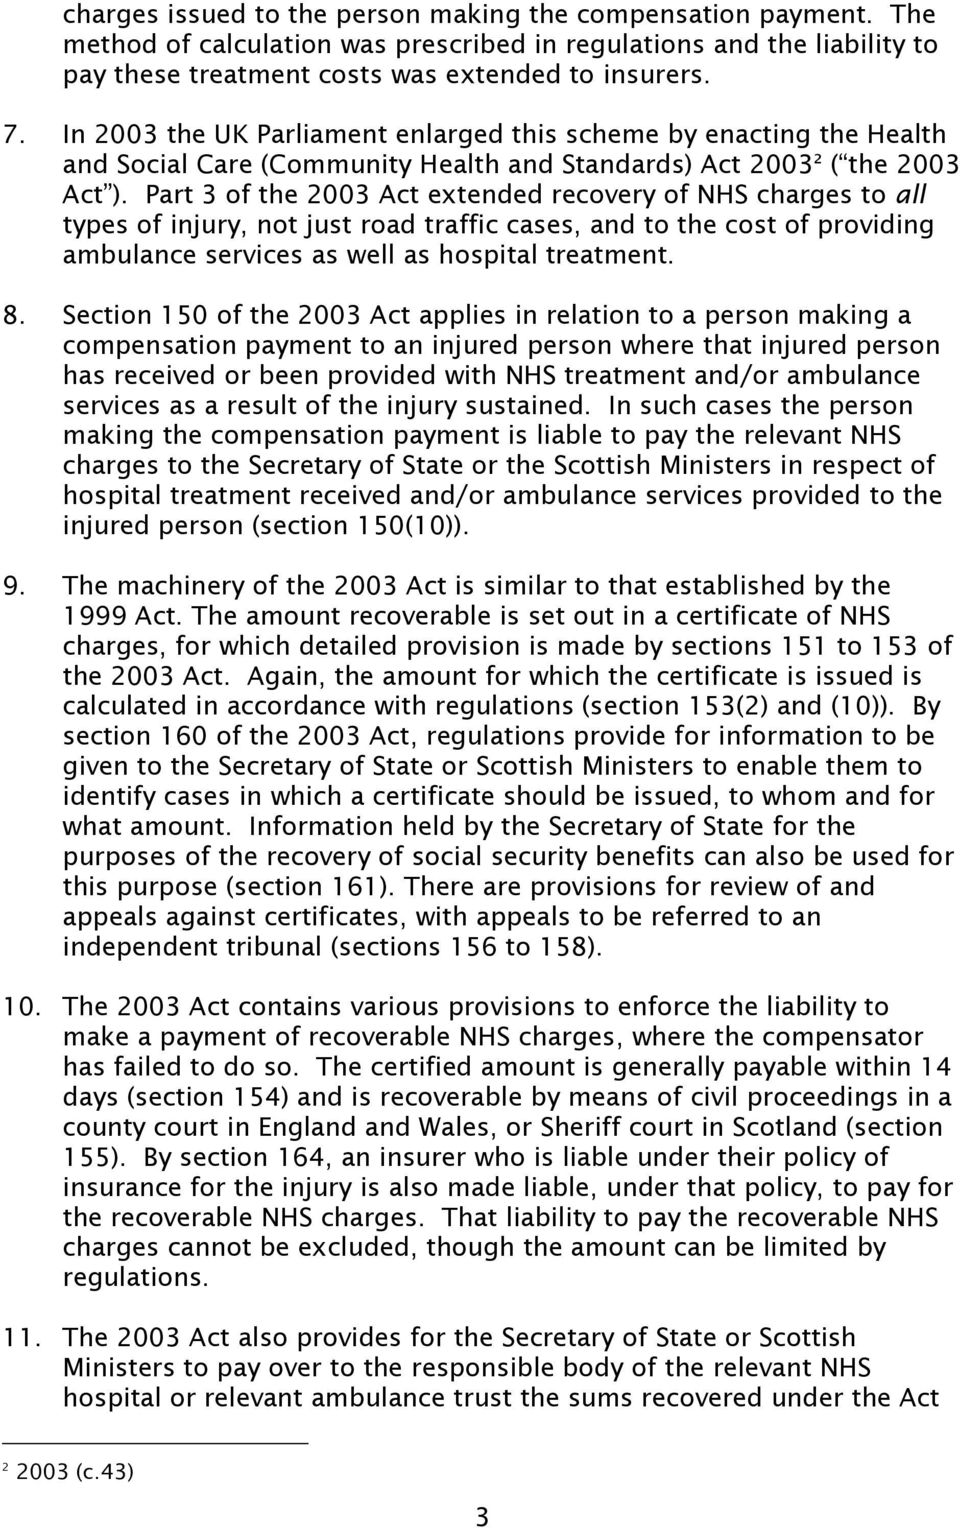 Part 3 of the 2003 Act extended recovery of NHS charges to all types of injury, not just road traffic cases, and to the cost of providing ambulance services as well as hospital treatment. 8.